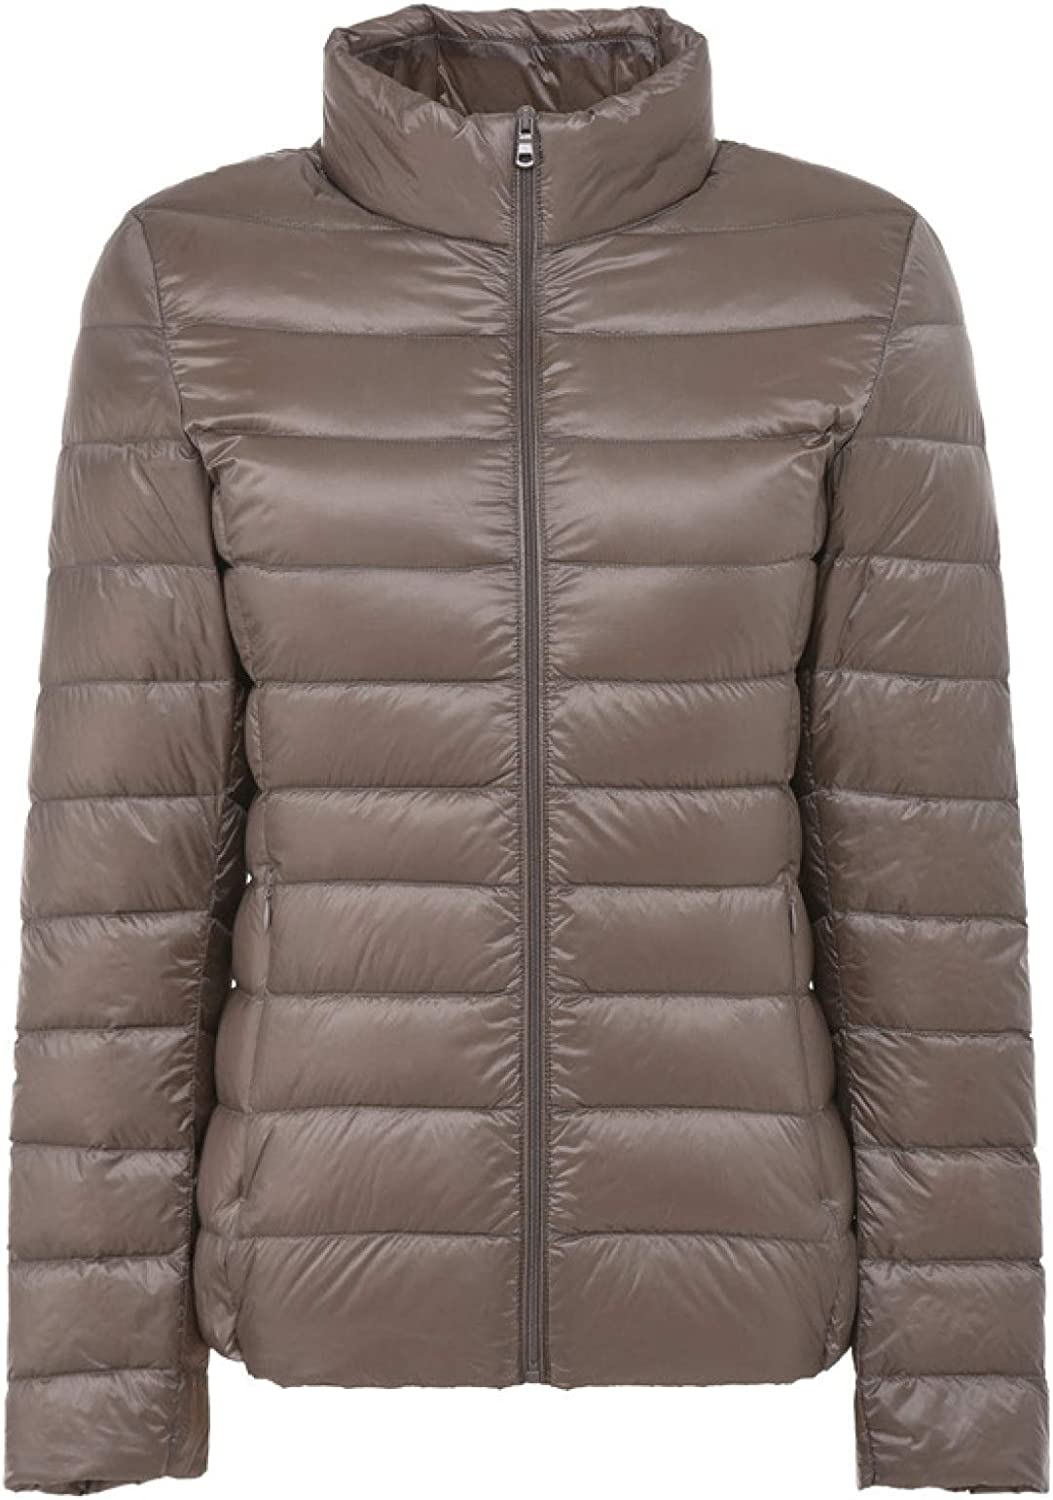 Women's Warm Down Jacket Women's Short Quilted Outerwear Jacket with Pocket